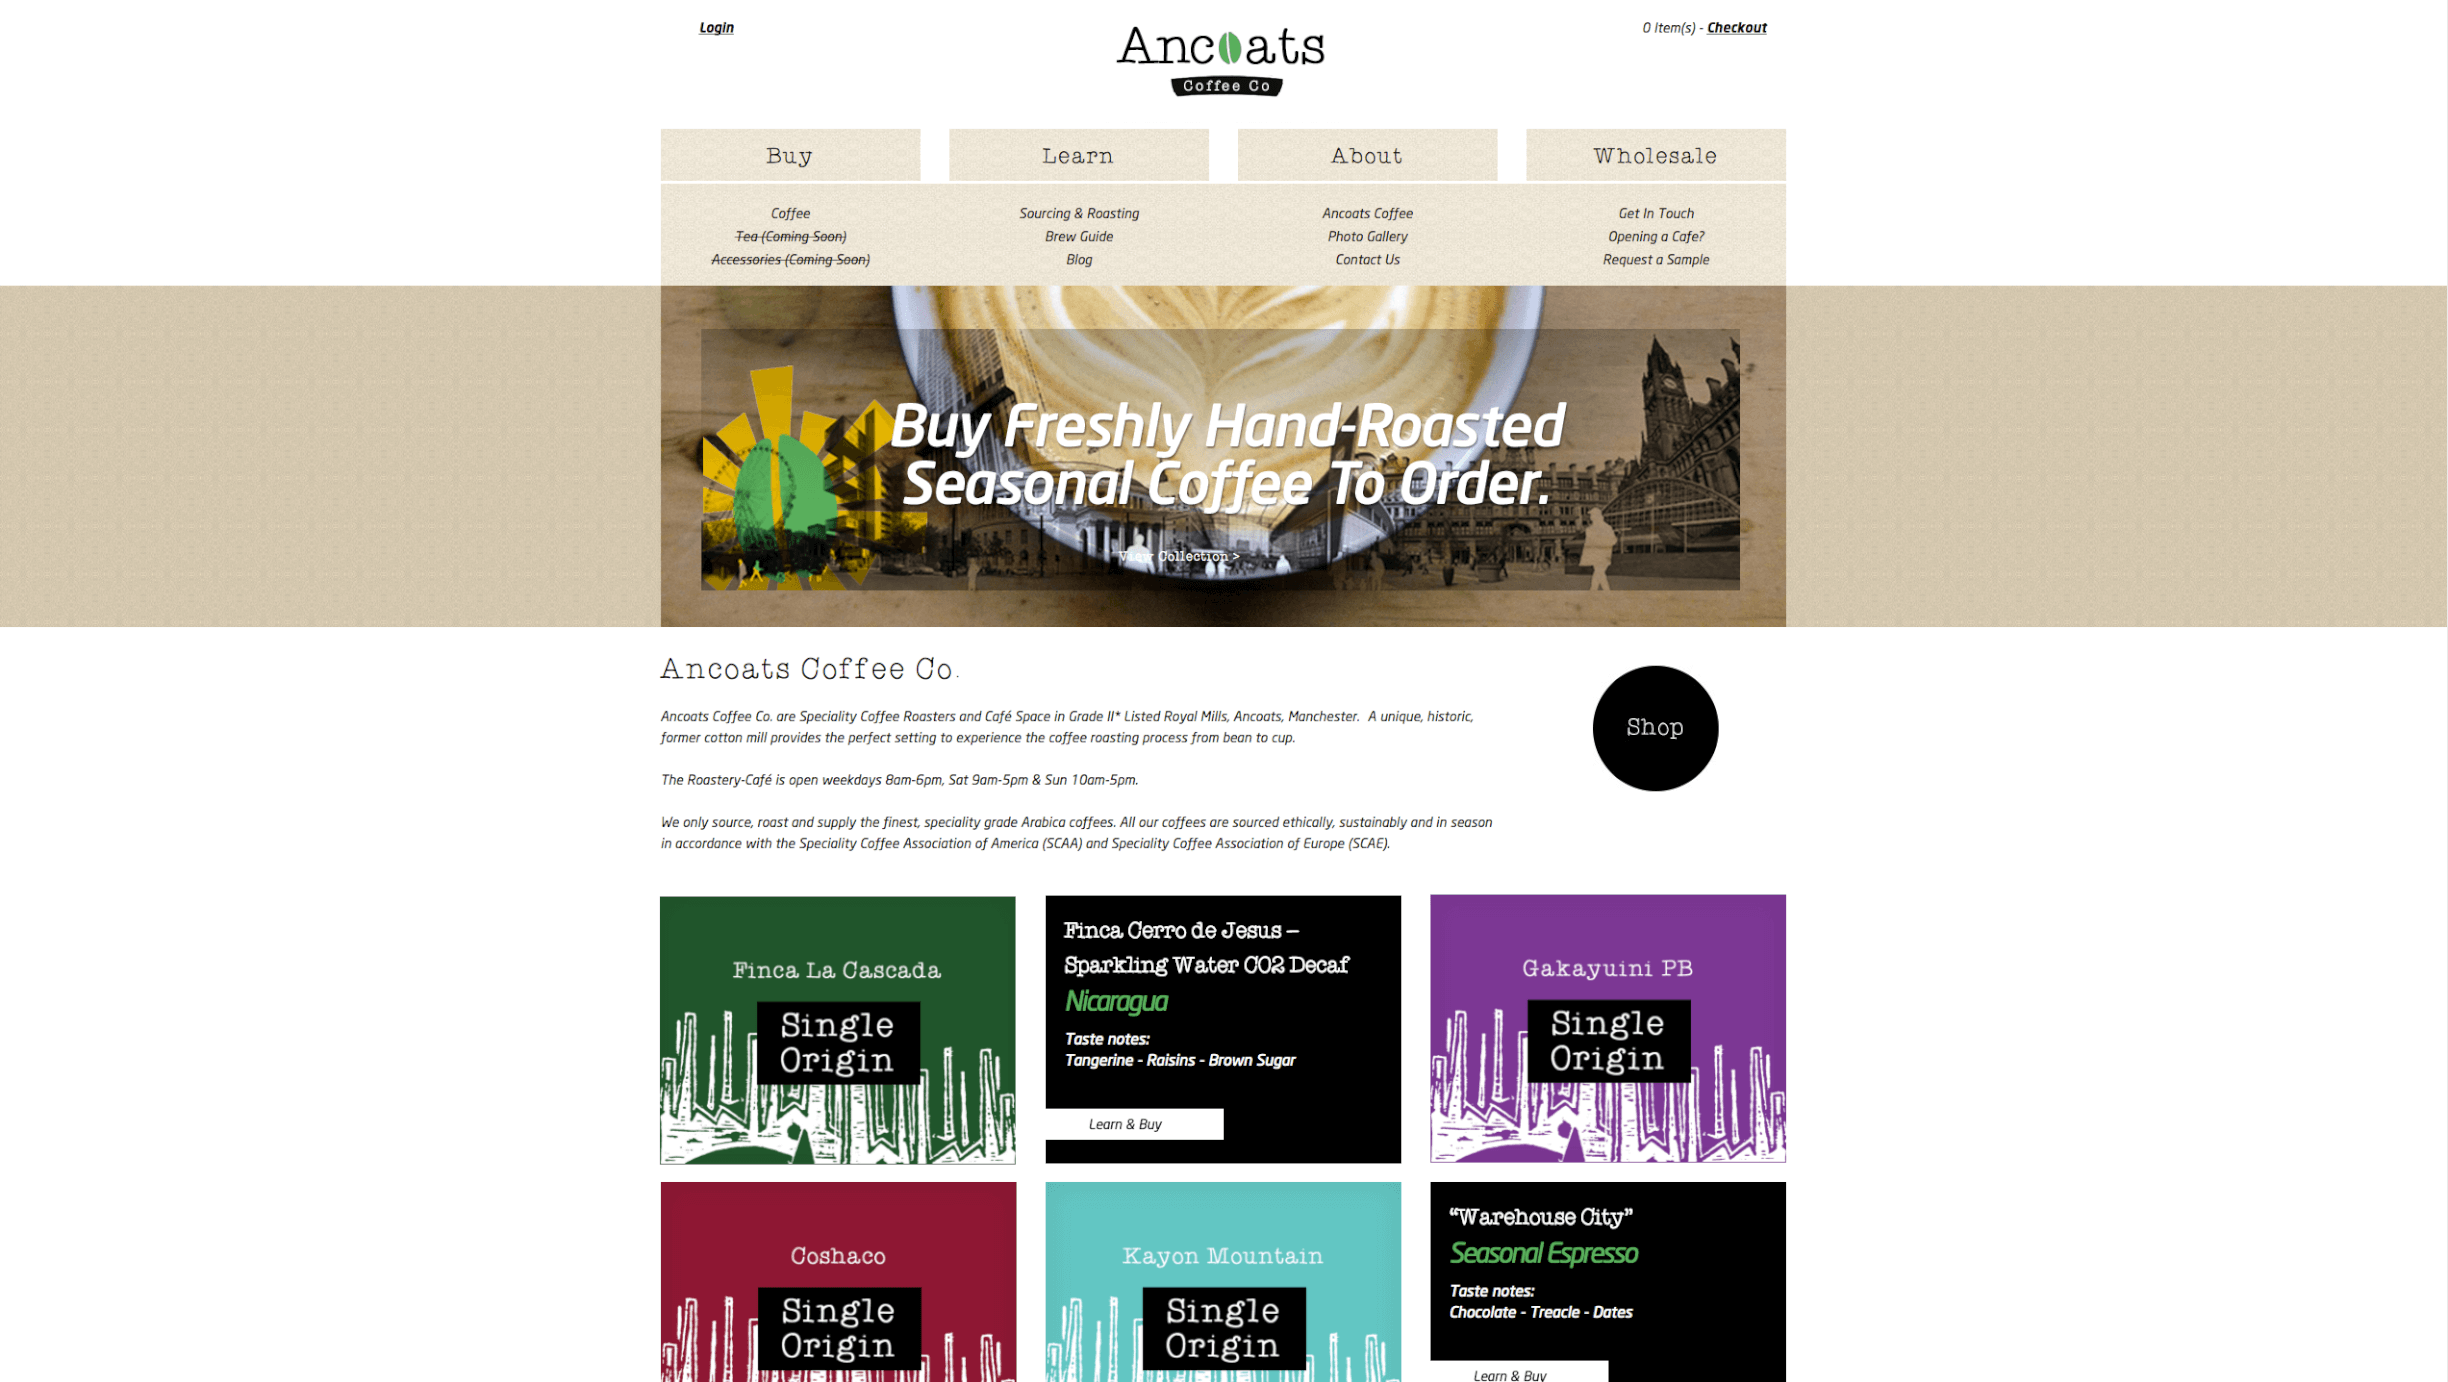 Ancoats Coffee Before - Cafe and coffee roastery website design